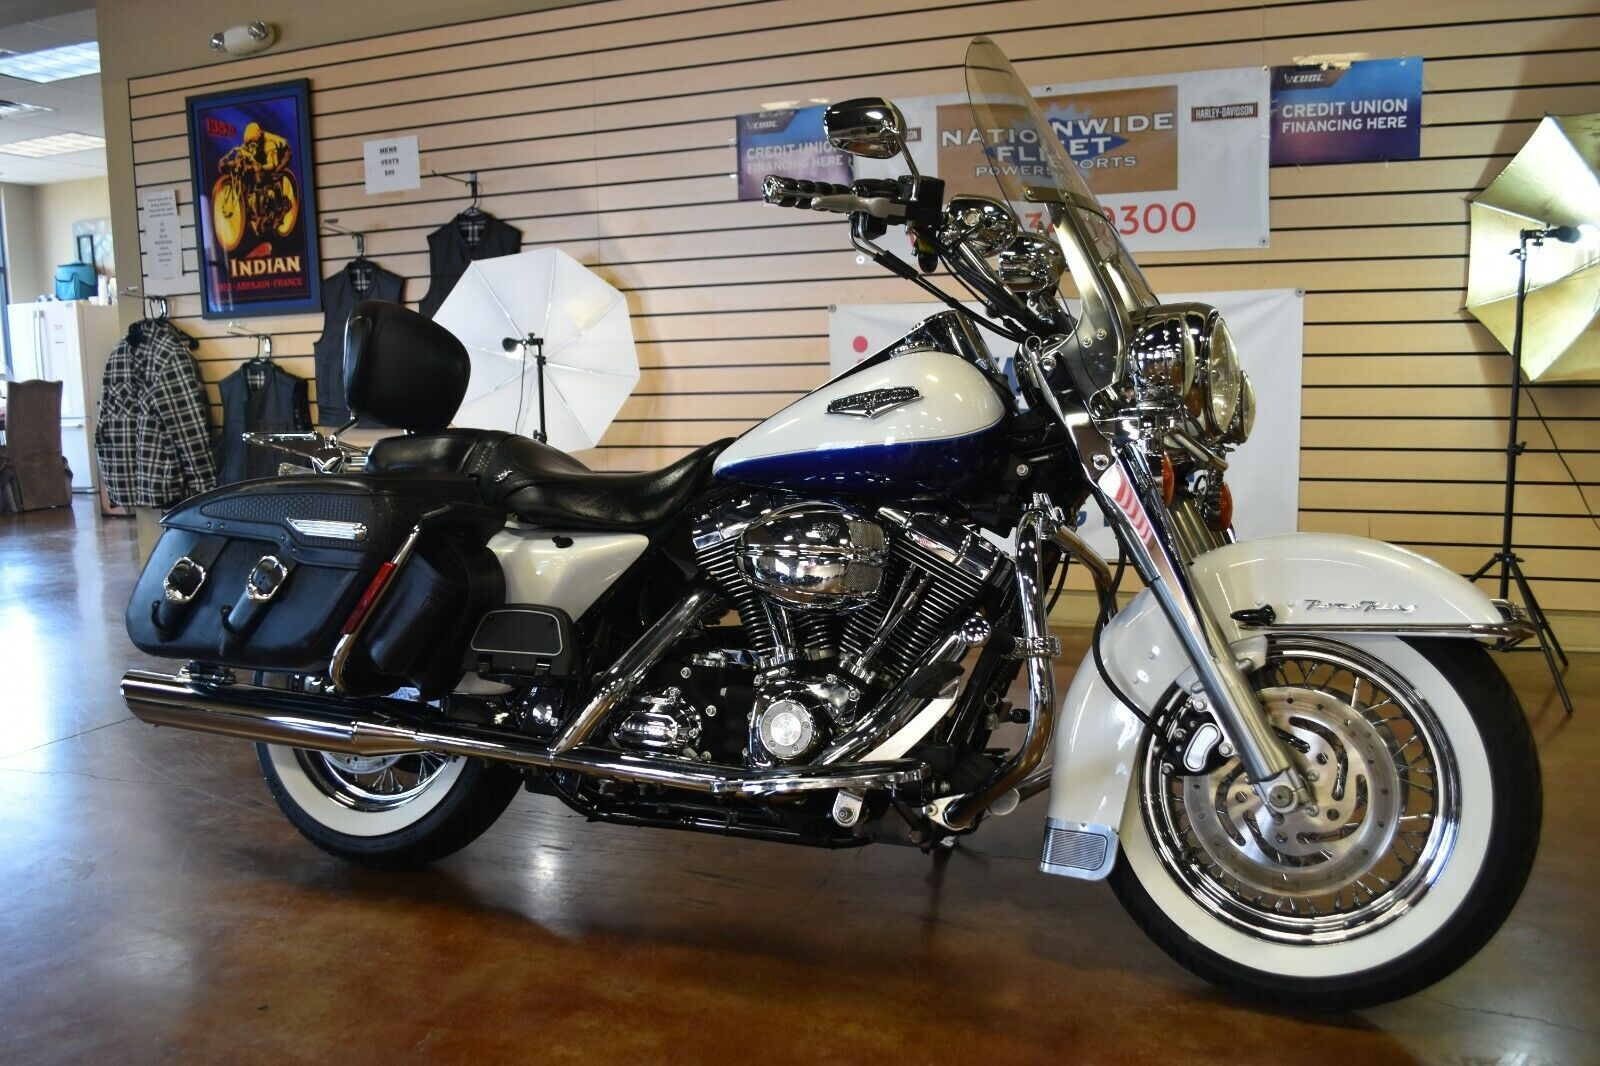 2007 Harley Davidson Road King Classic FLHRC Clean and Clear Title Bike Nice